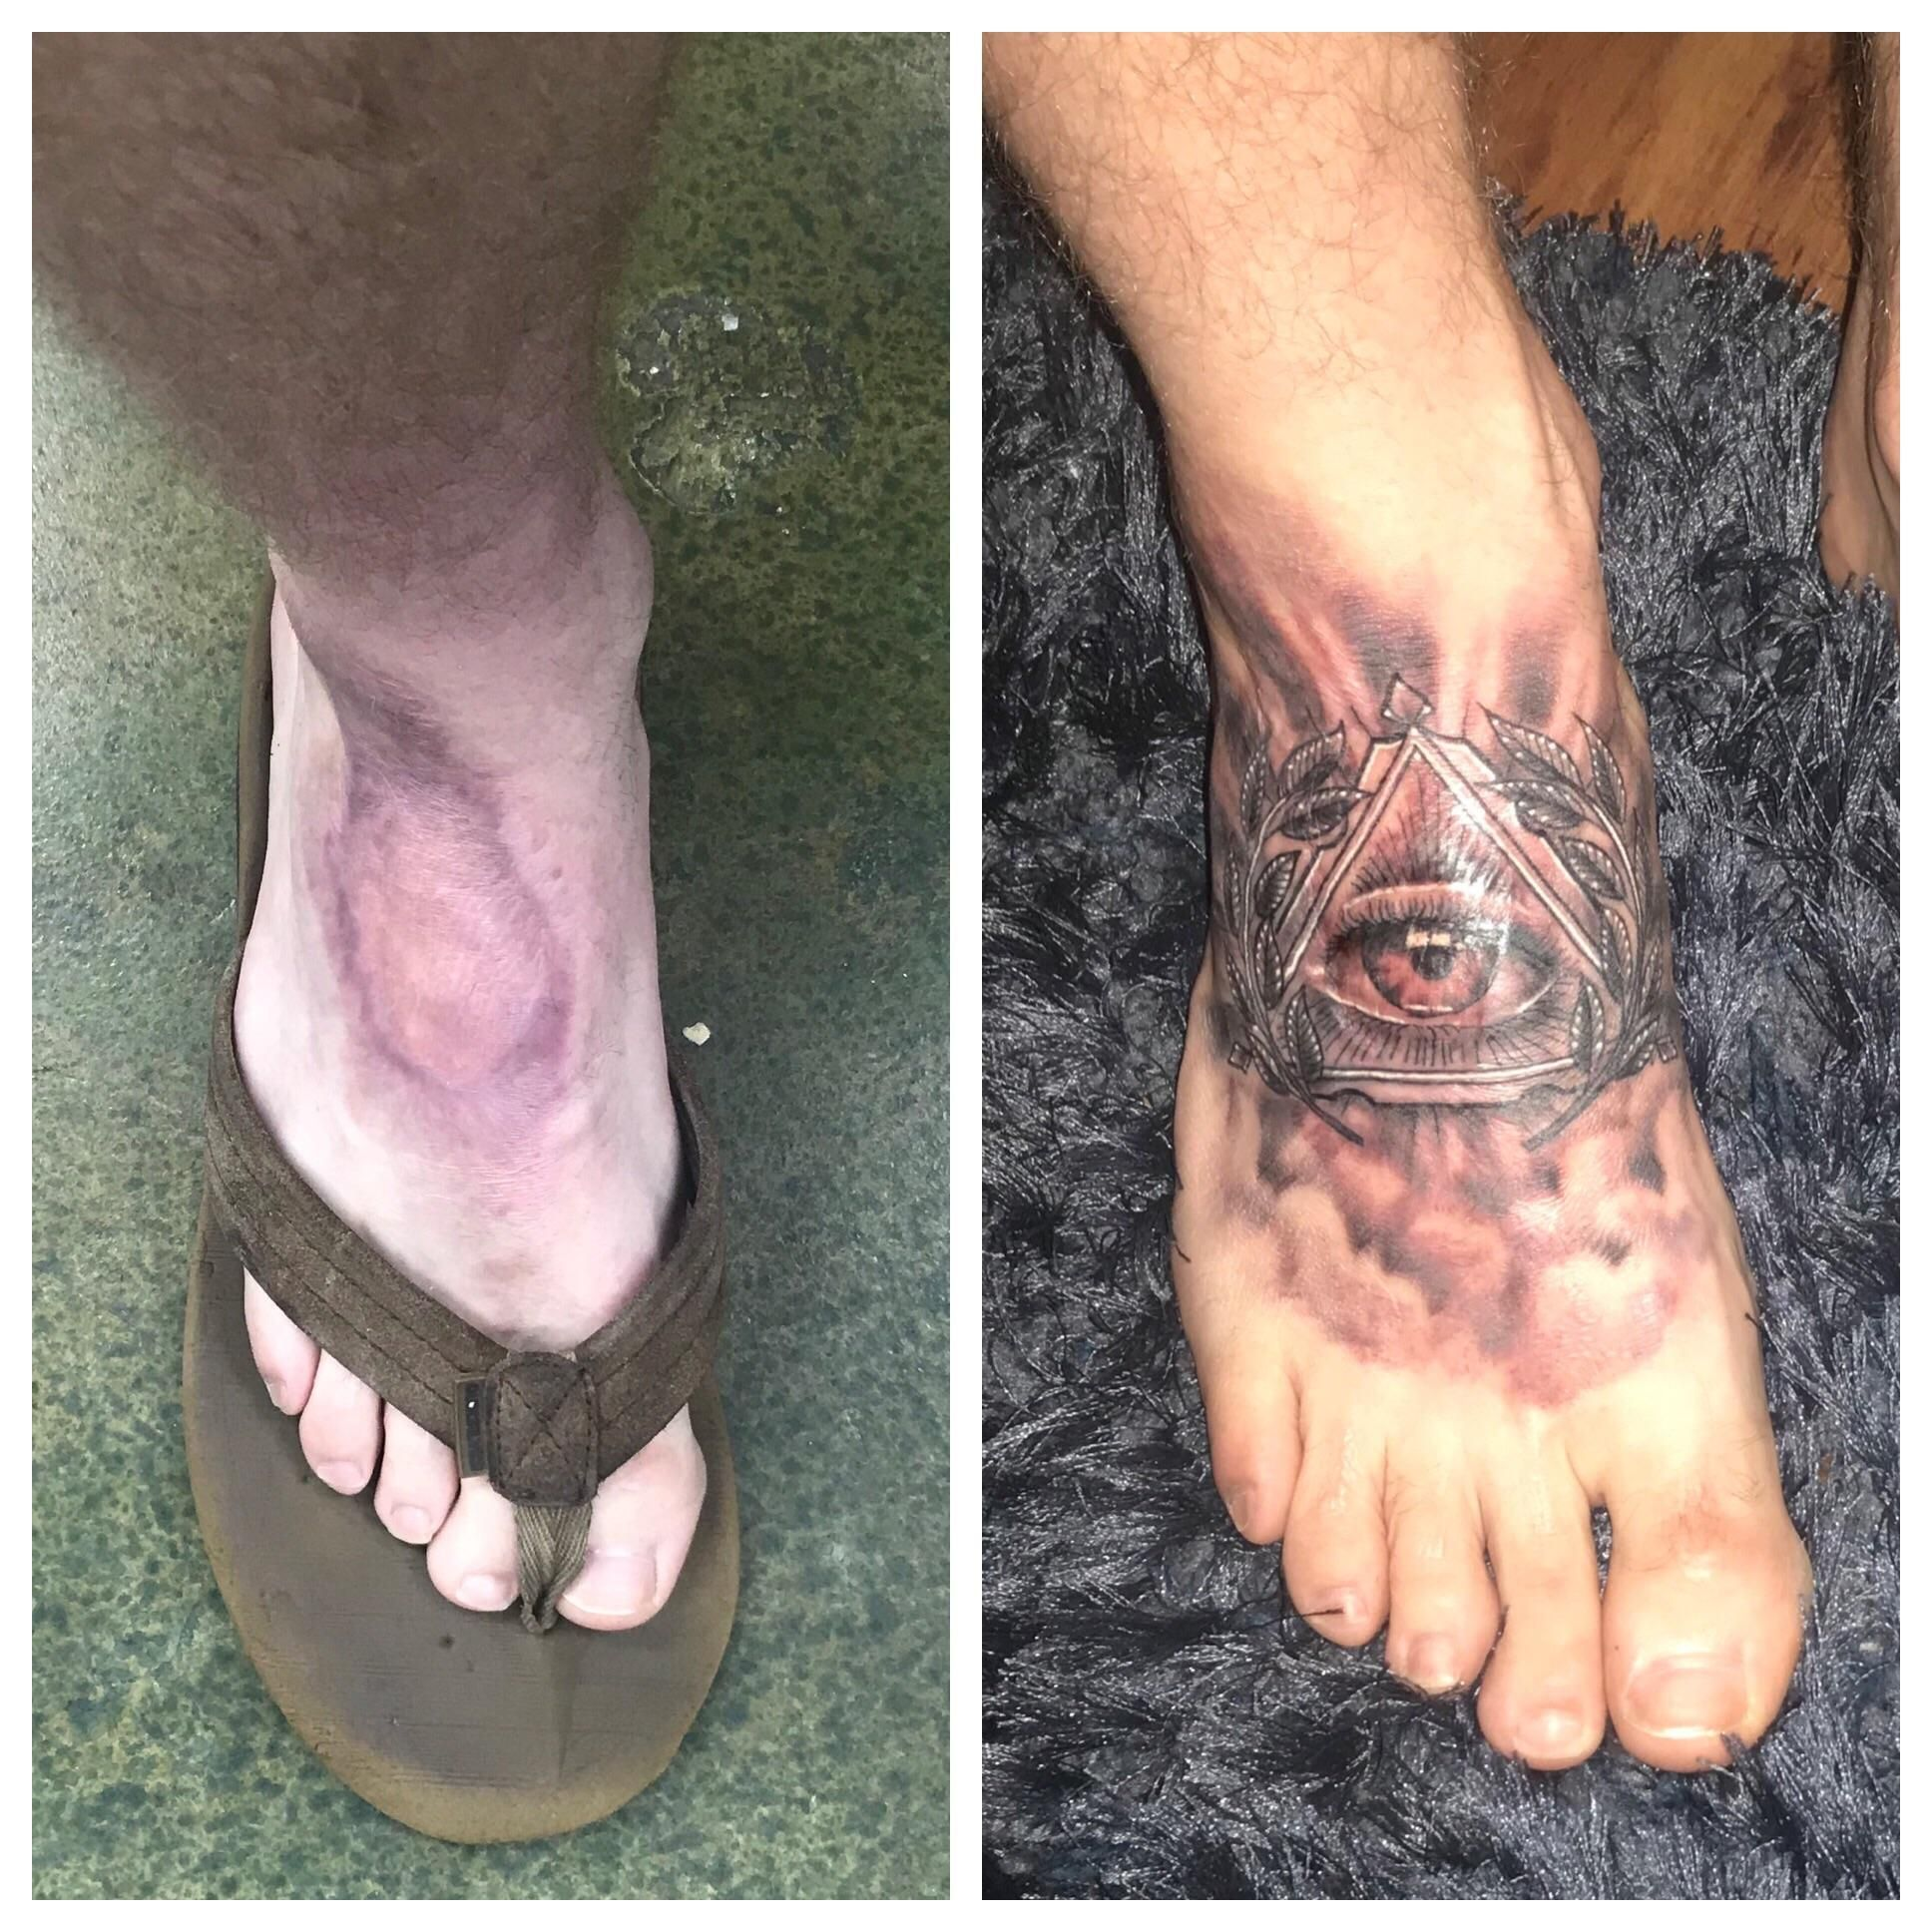 Eye of providence gnarly foot scar cover up done by